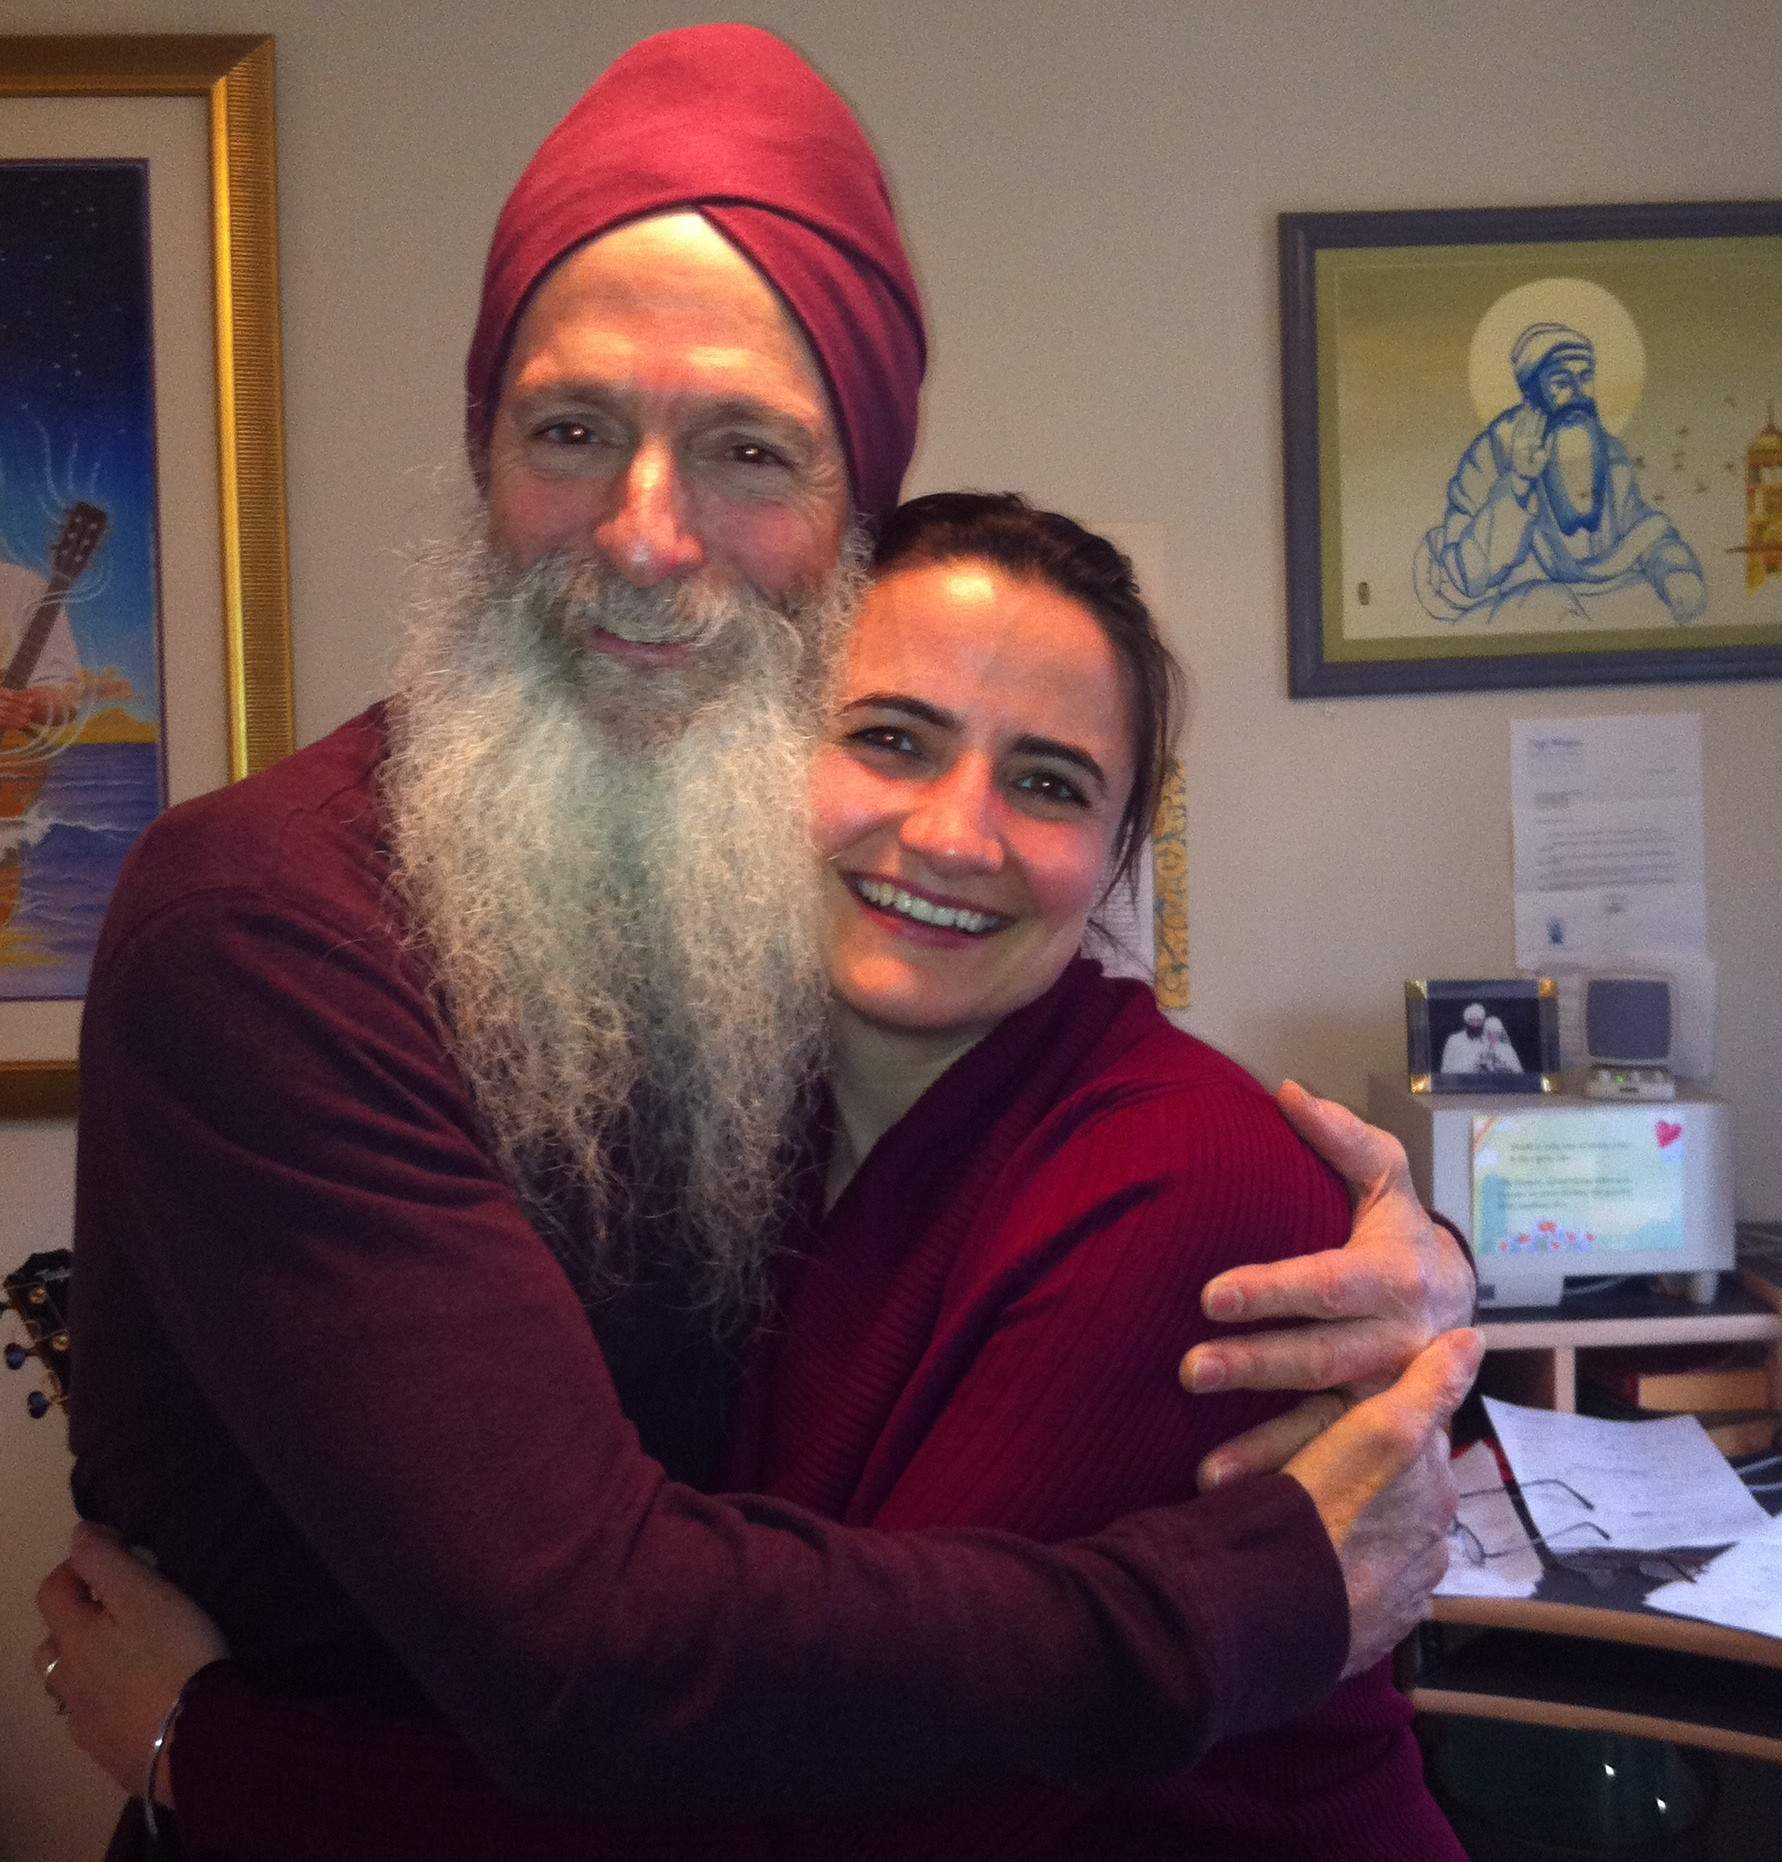 Video interview with GuruGanesha Singh about his new album, Kundalini Surjhee